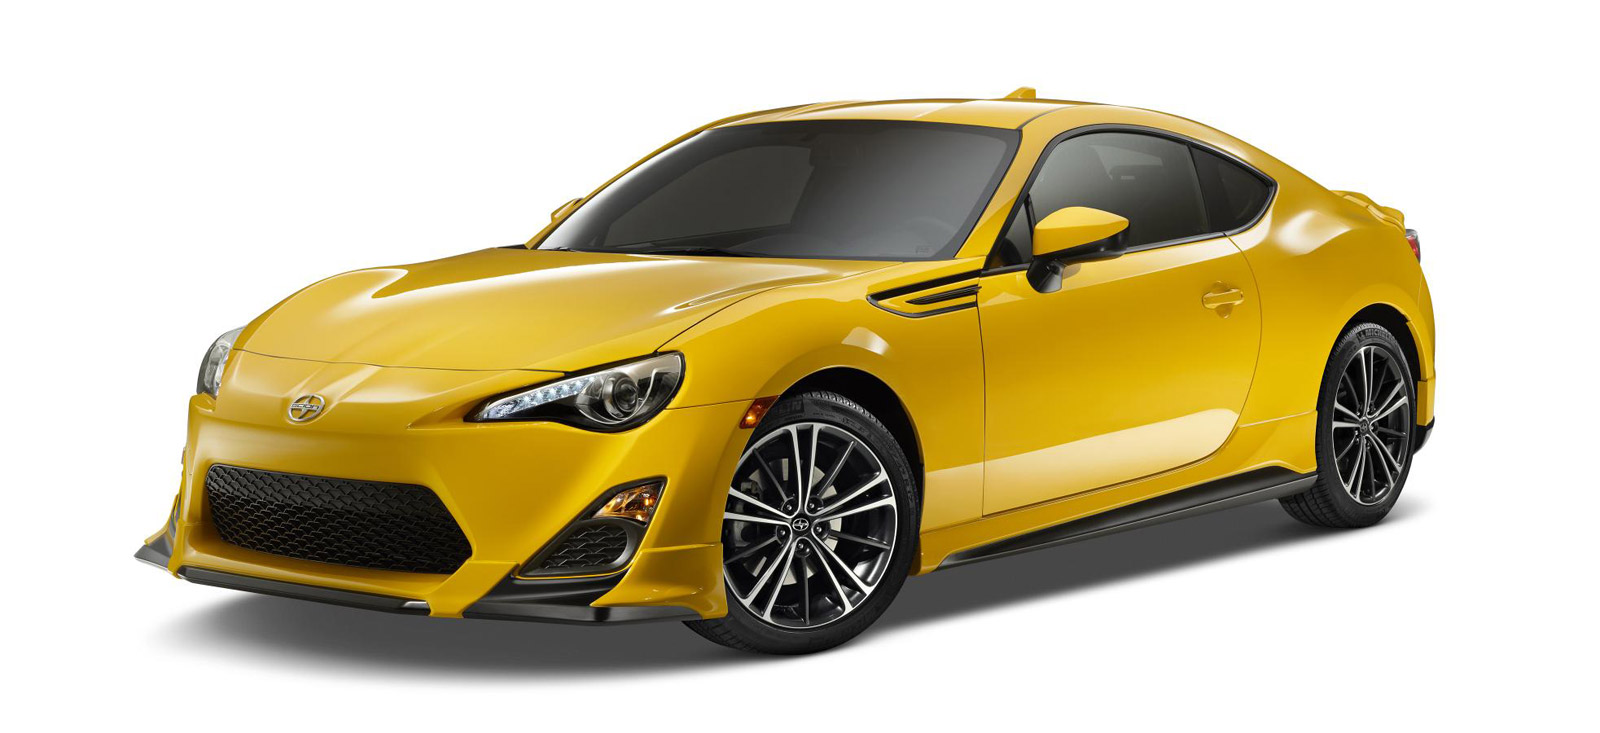 subaru brz vs scion fr s compare cars. Black Bedroom Furniture Sets. Home Design Ideas